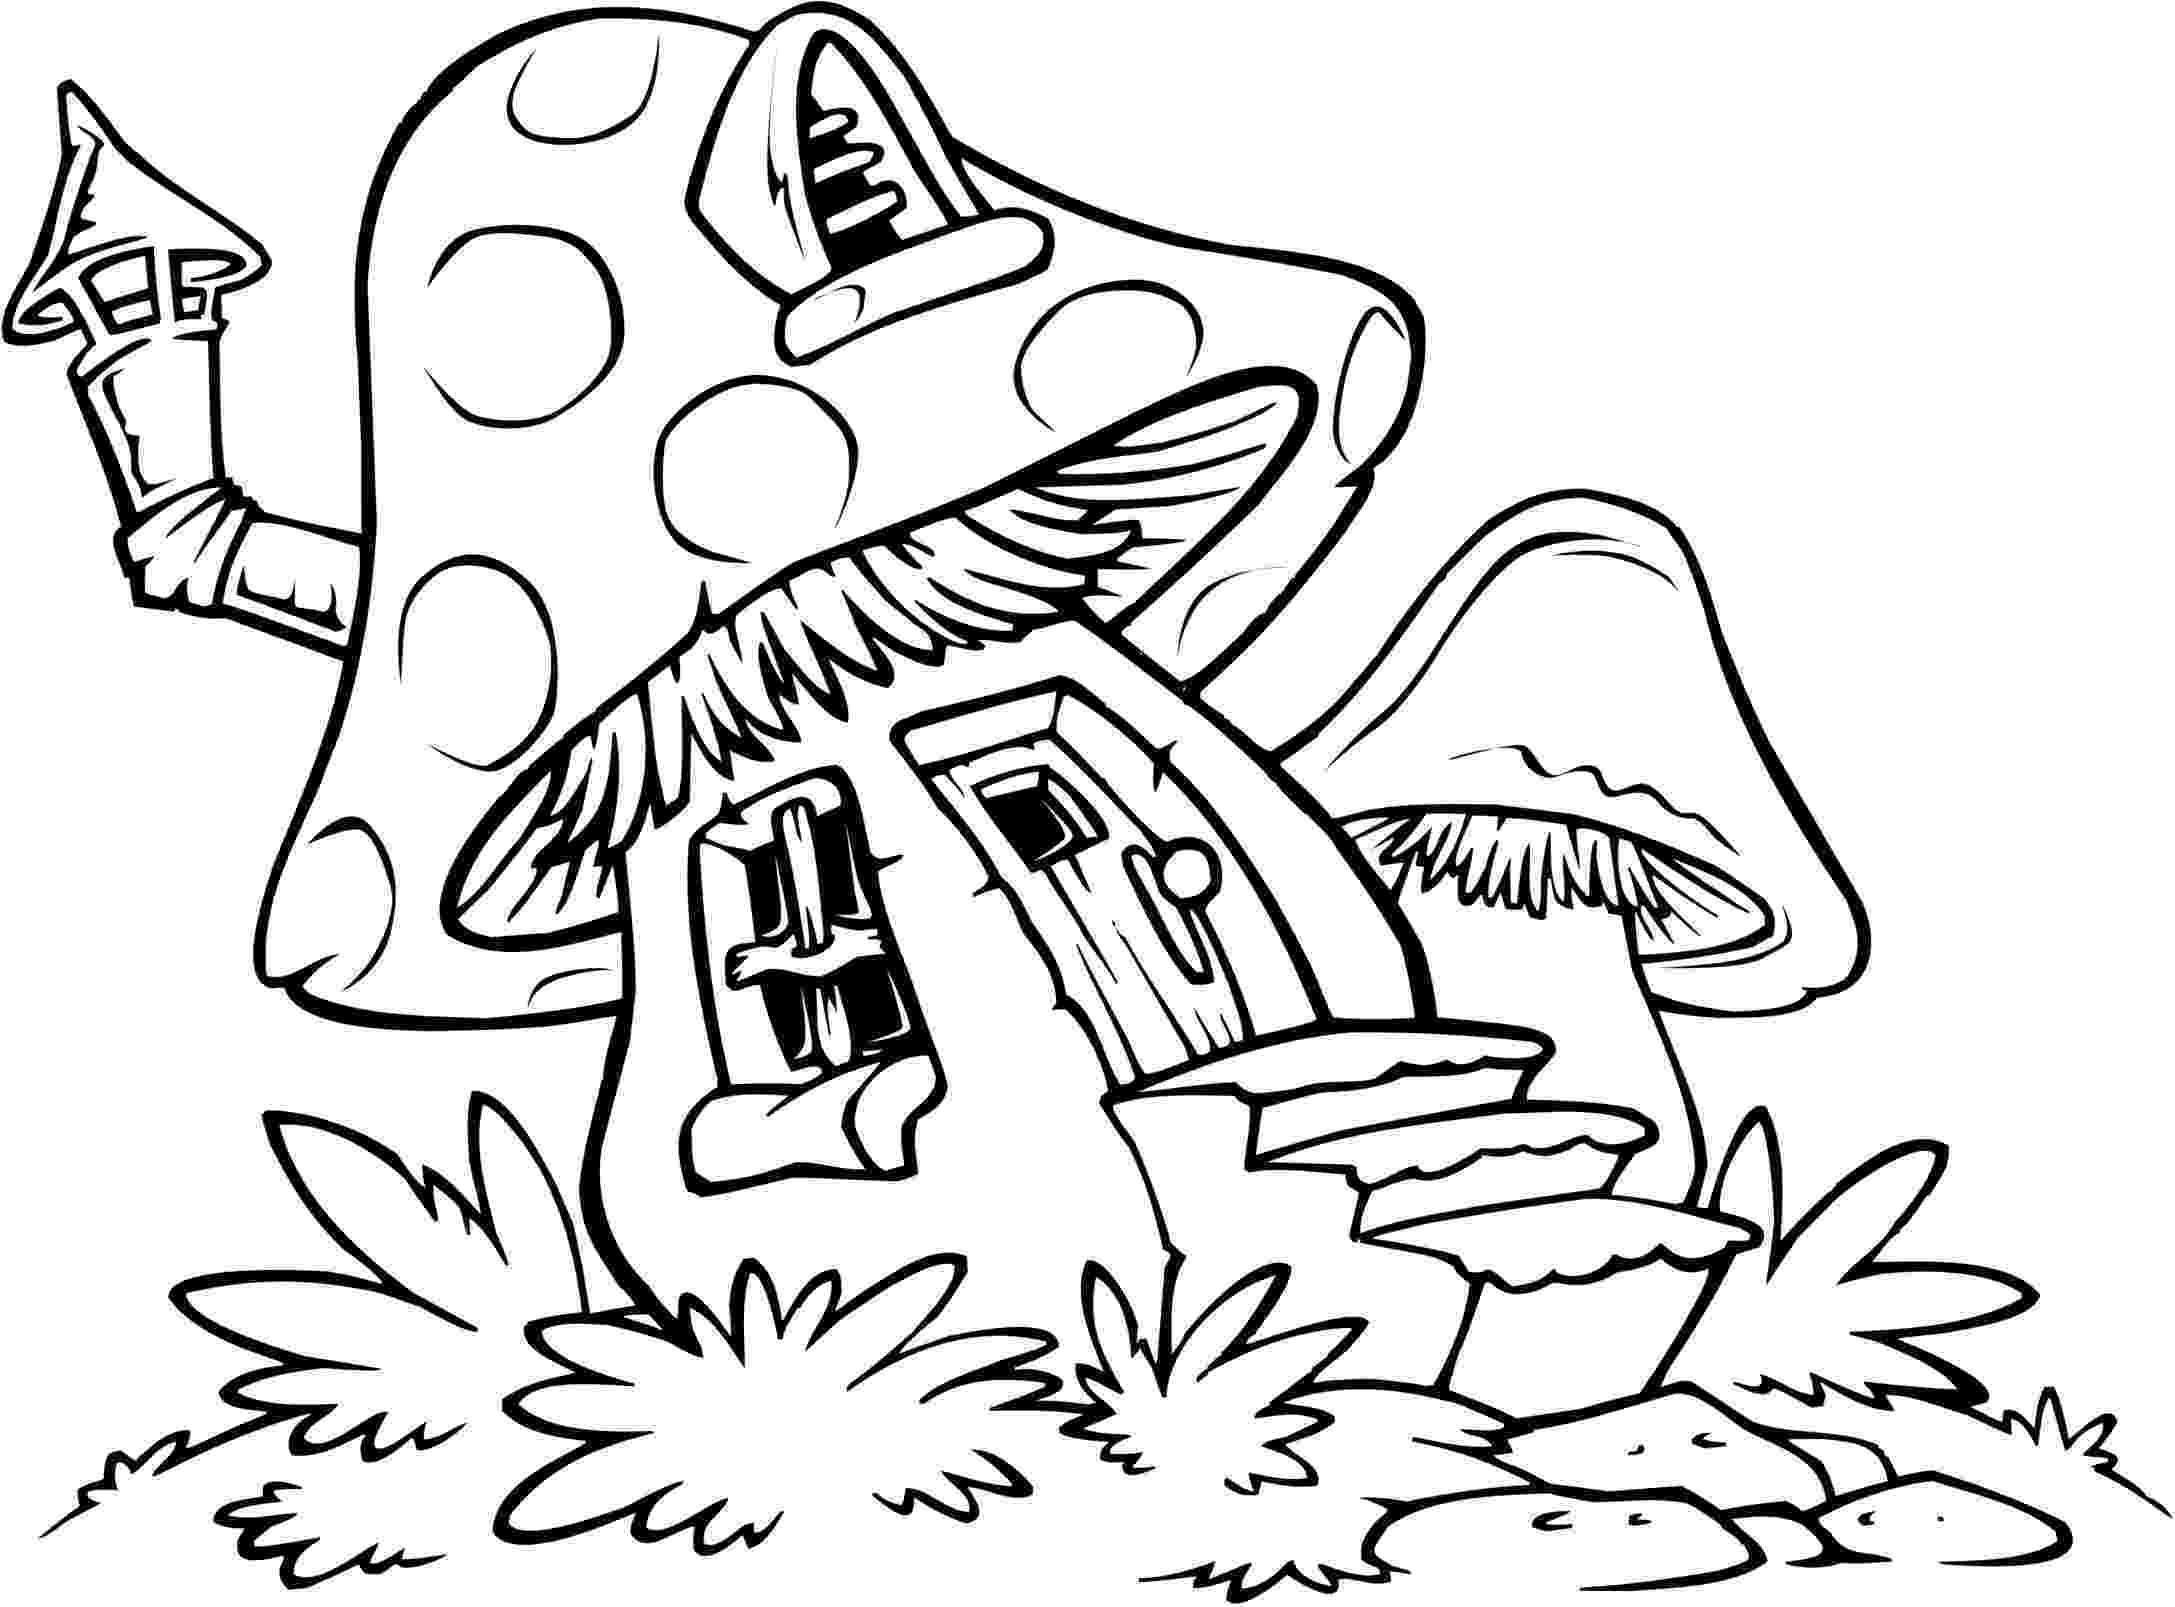 full size coloring pages full size coloring pages for adults at getdrawings free pages size full coloring